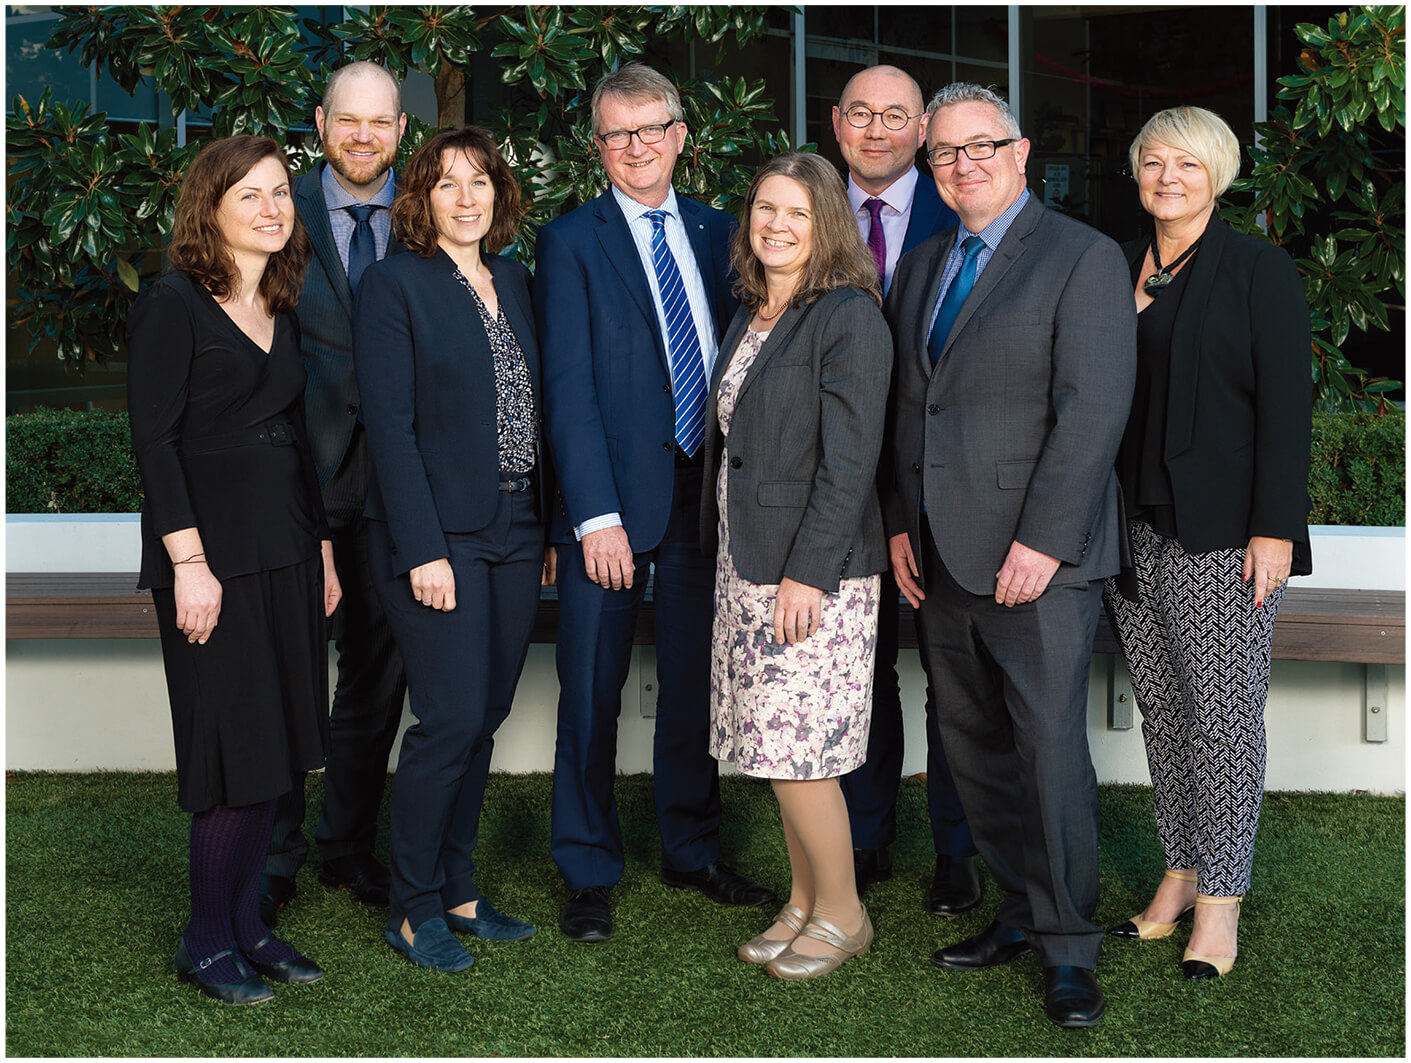 Senior Leadership Group (L to R): Chelsey Bell, Paul Pfitzner, Louise Macleod, Michael Manthorpe, Fiona Sawyers, Rodney Lee Walsh, Dermot Walsh and Doris Gibb. Photo taken in August 2017.